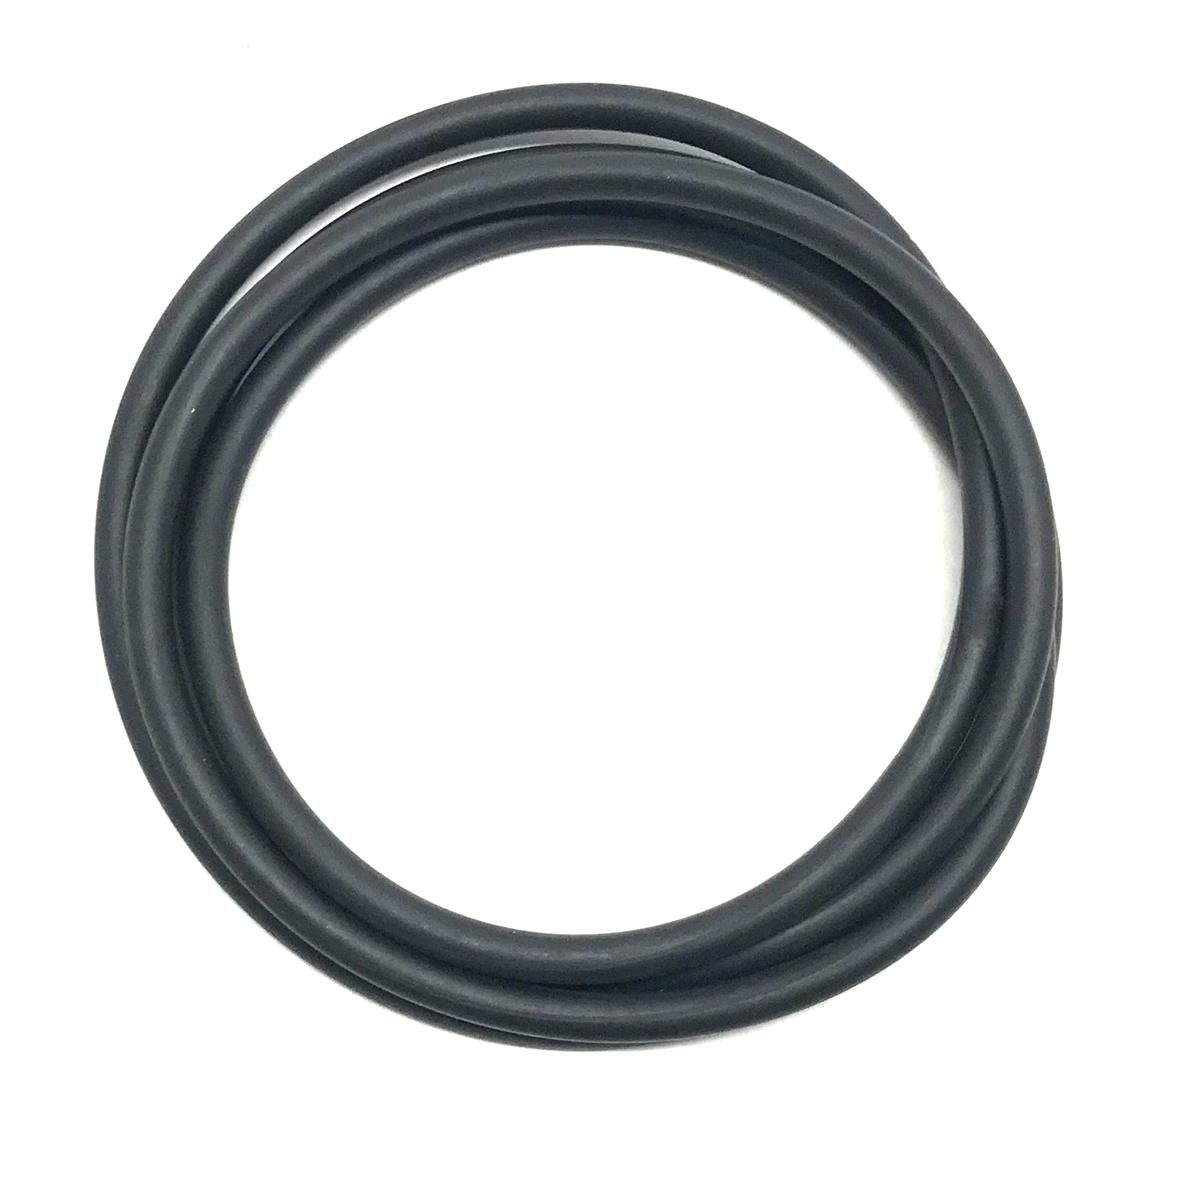 TI-20 | TI-20 20 Inch O-Ring for 2-Piece Super Single Rims (4).jpg